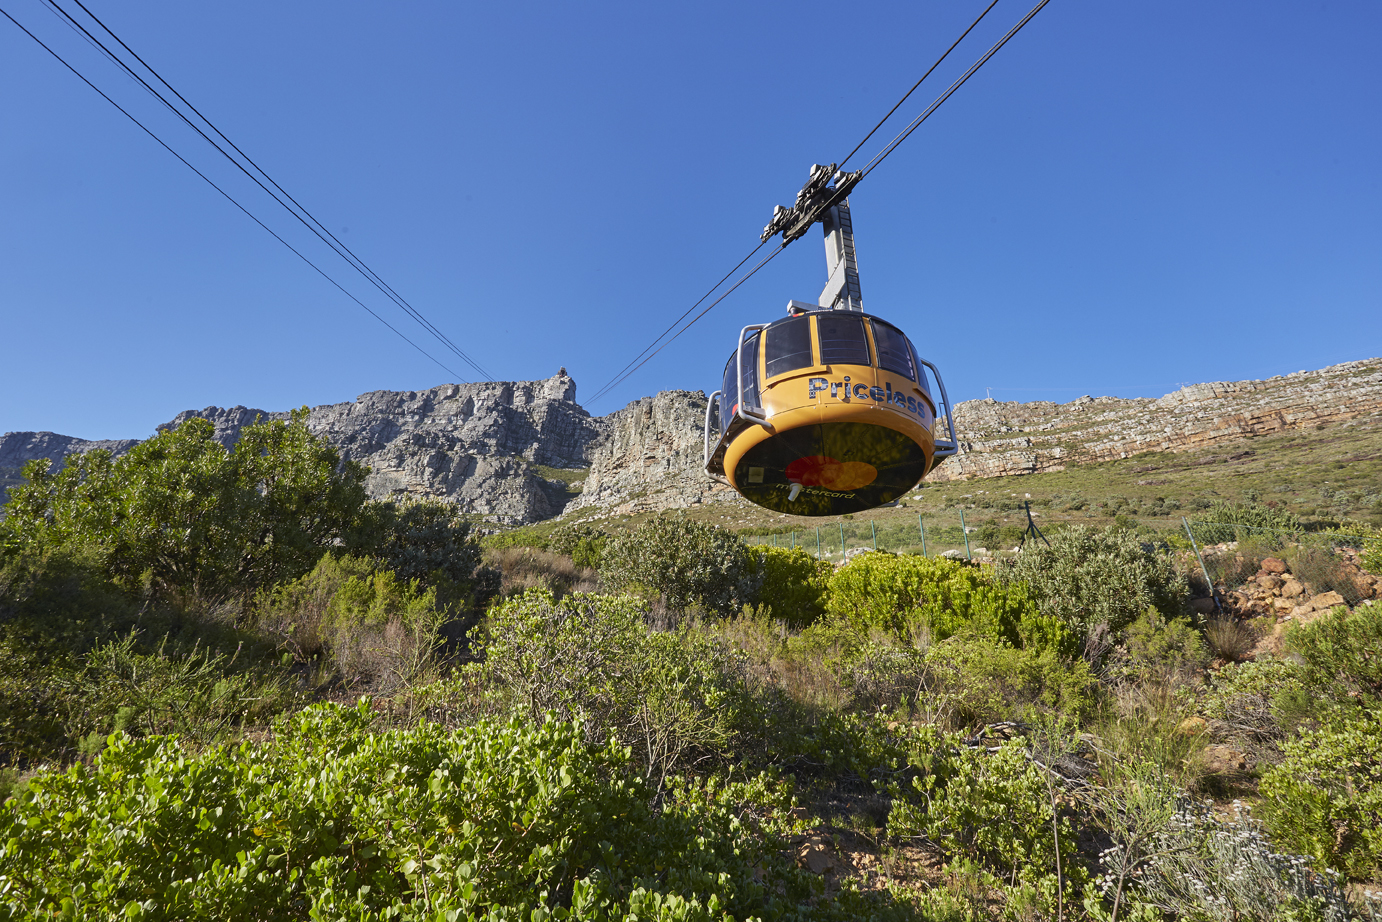 #Attraction20 spotlight meet our AAVEA 2020 premium partner Table Mountain Cableway